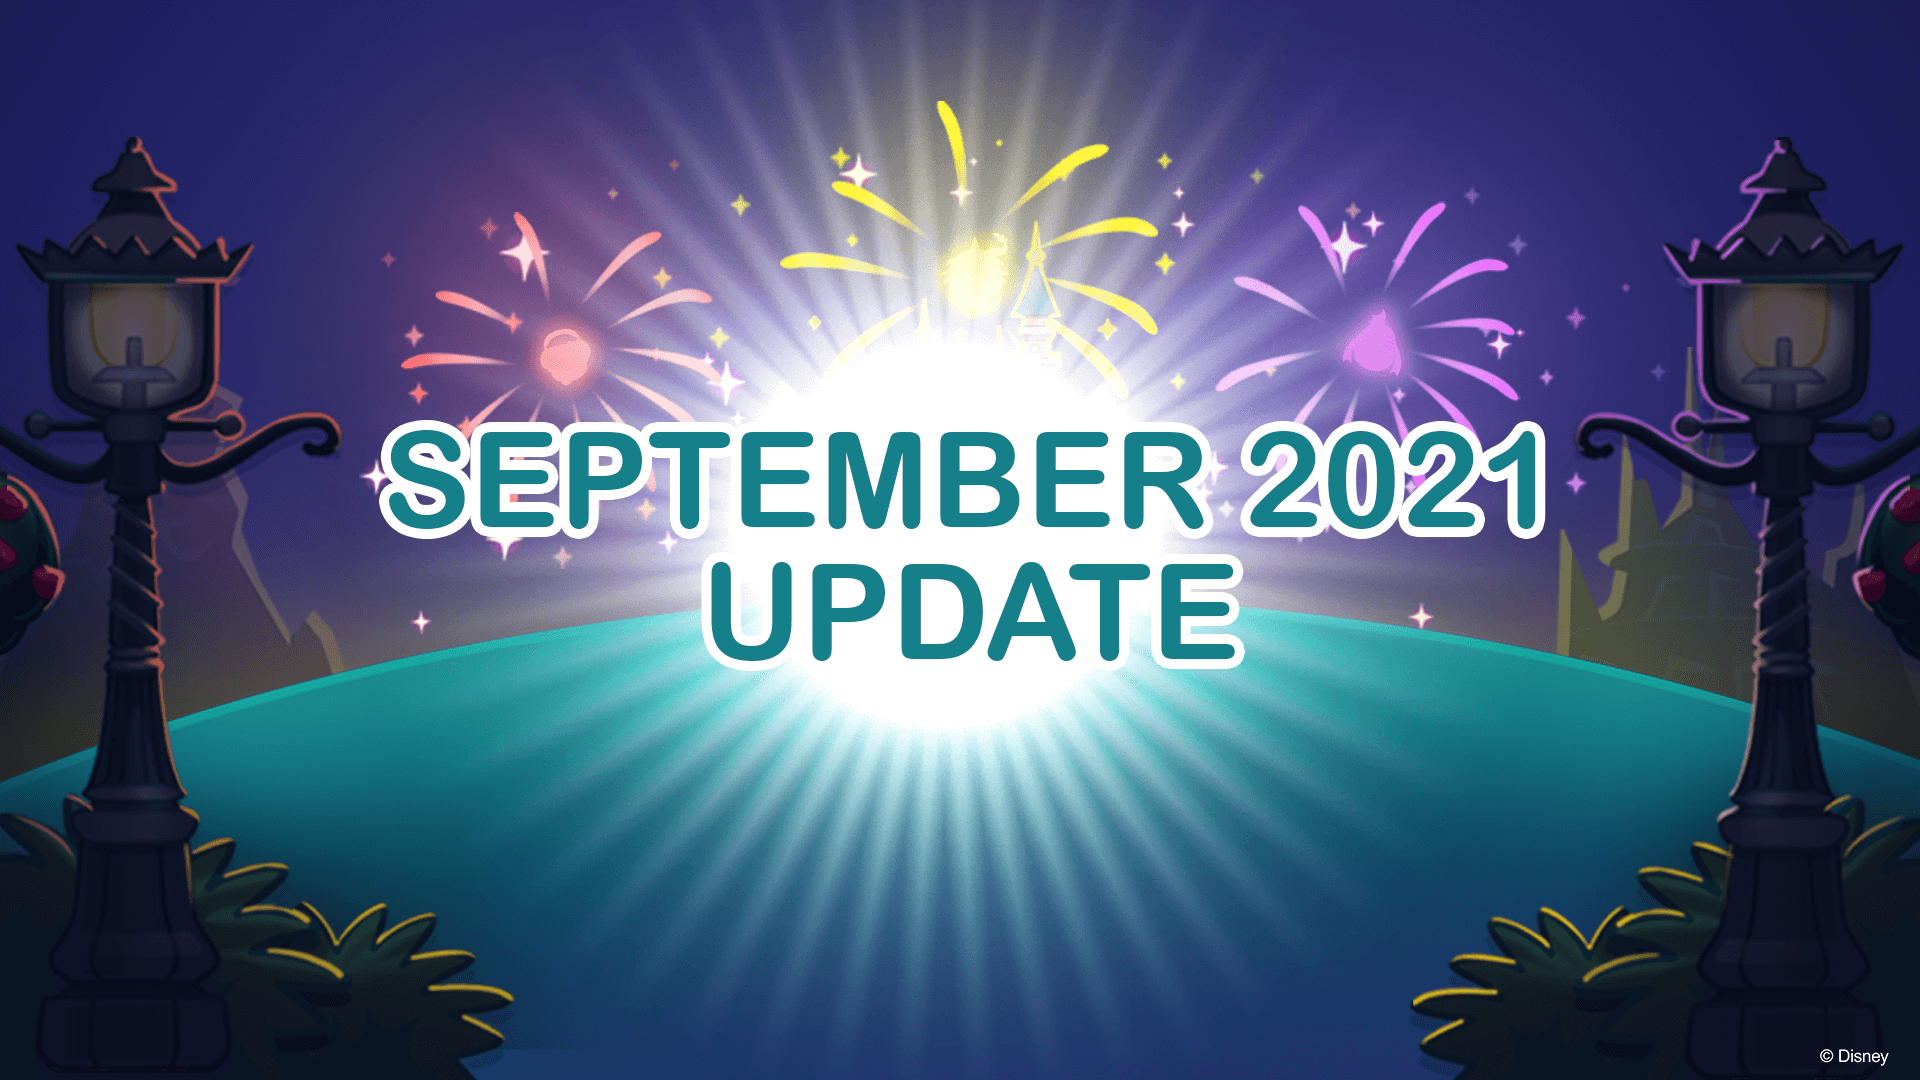 September 2021 Update Featured Image